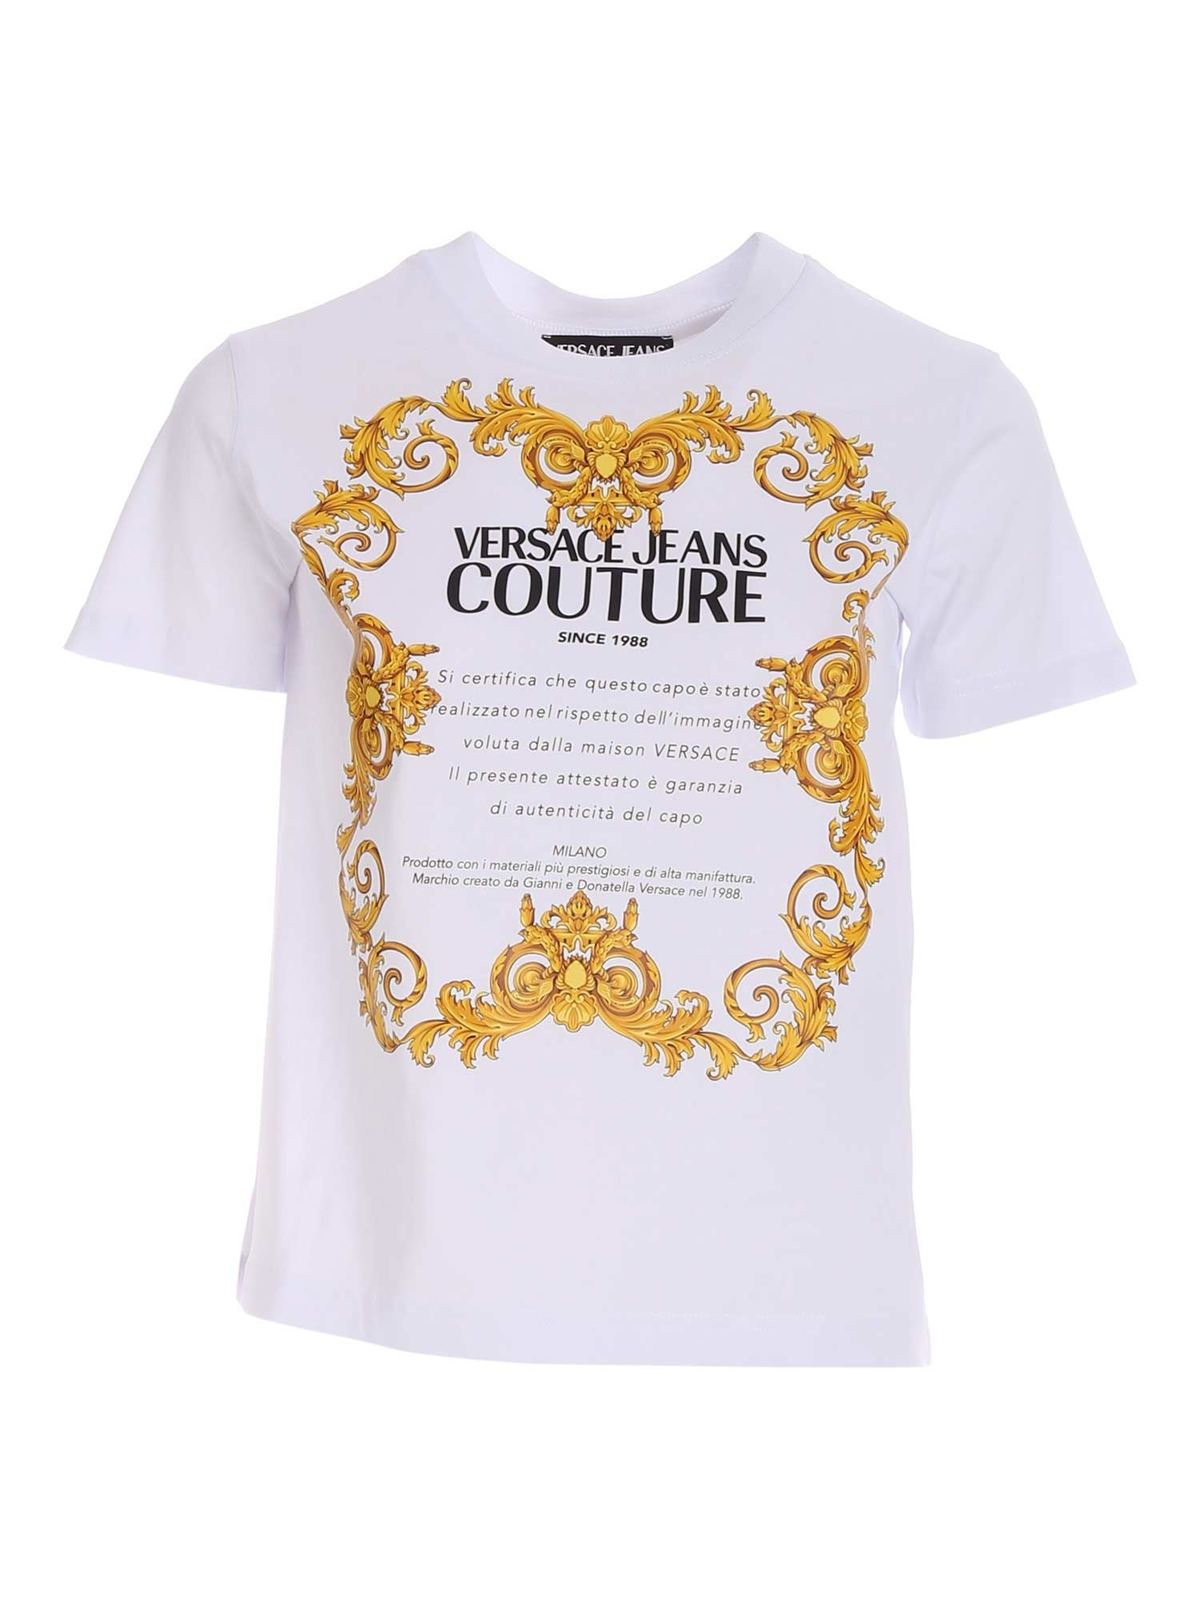 VERSACE JEANS COUTURE PRINTED T-SHIRT IN WHITE